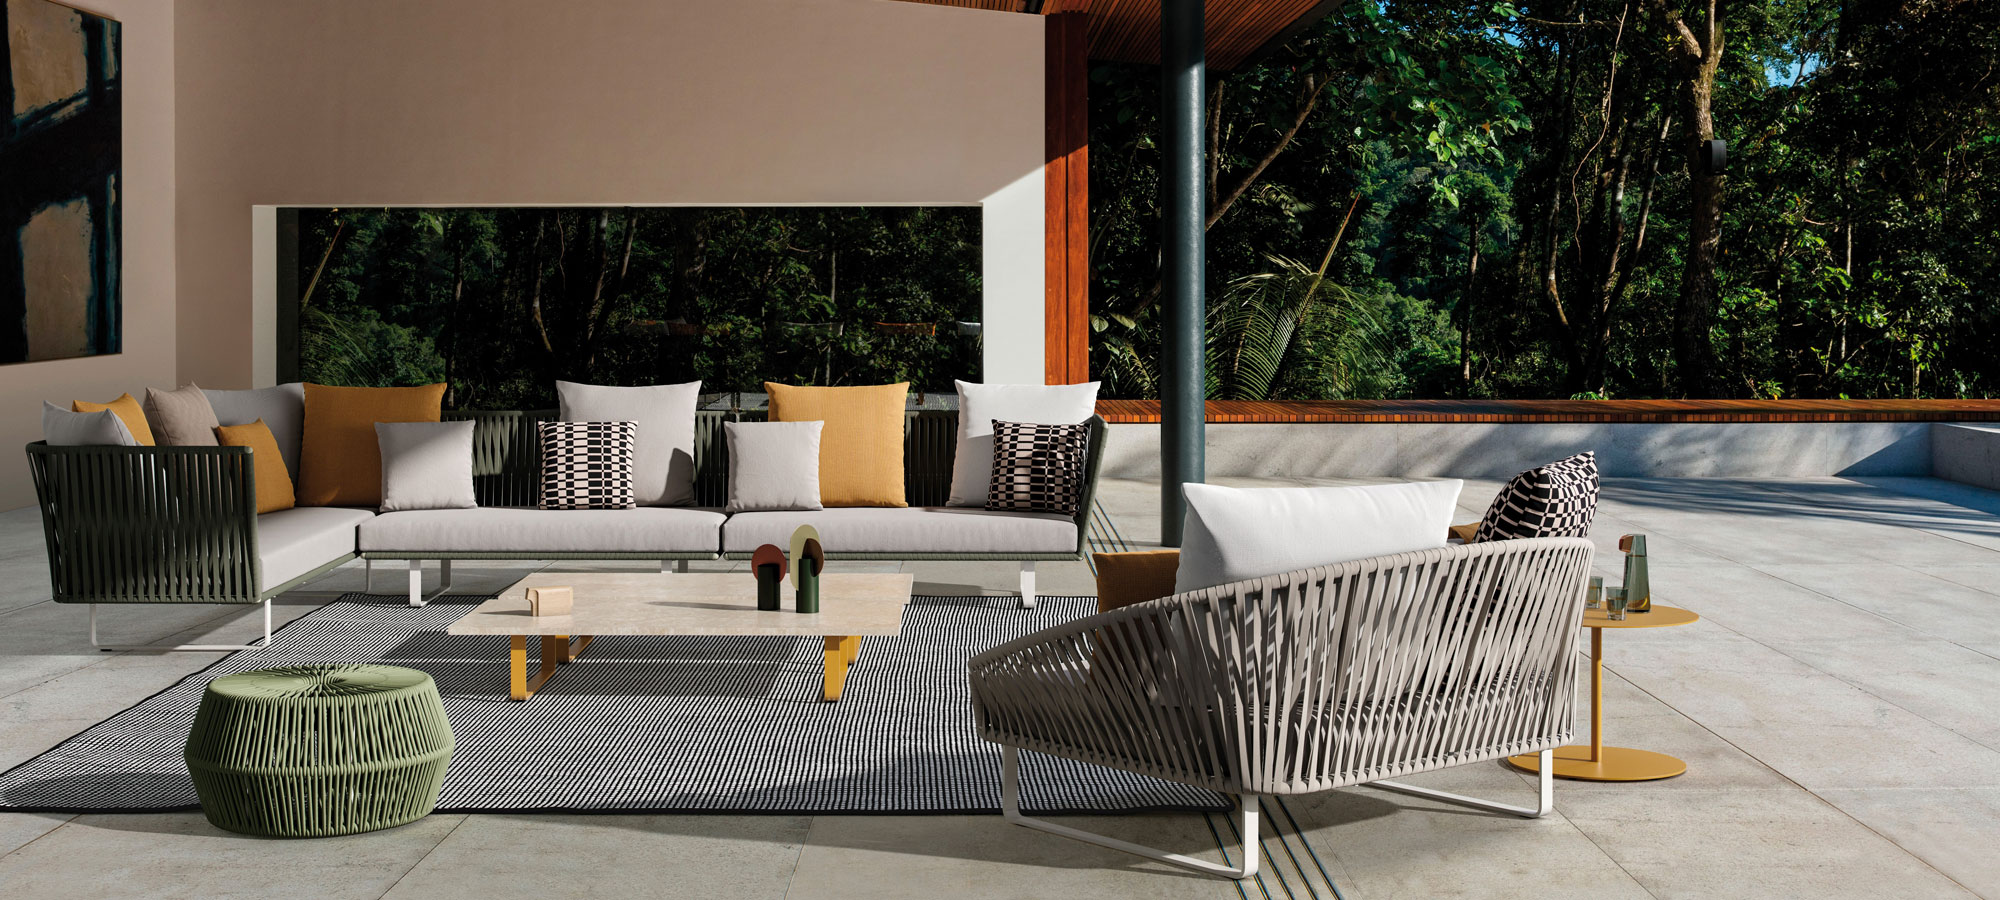 Bitta-lounge-kettal-outdoor-furniture-imported-luxury